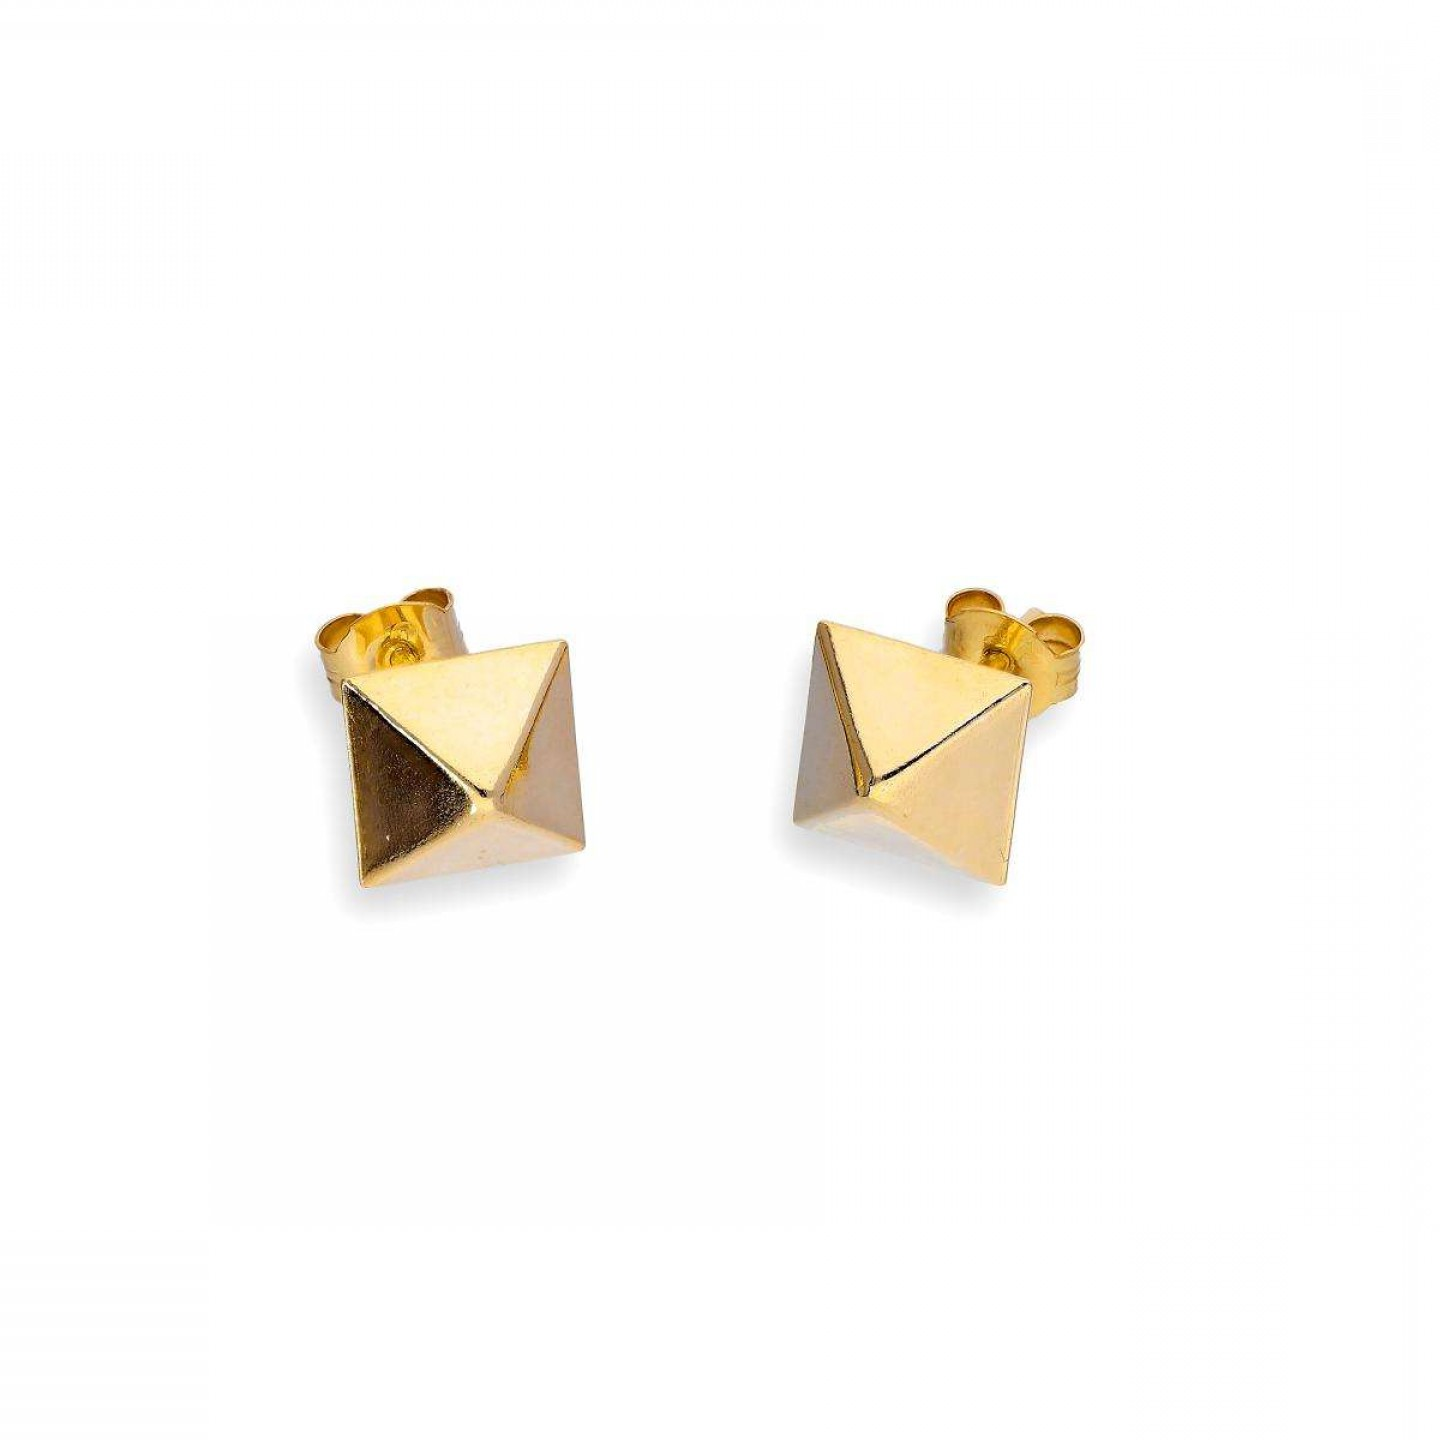 Pyramid Stud Vector: Ct Gold Square Pyramid Stud Earrings